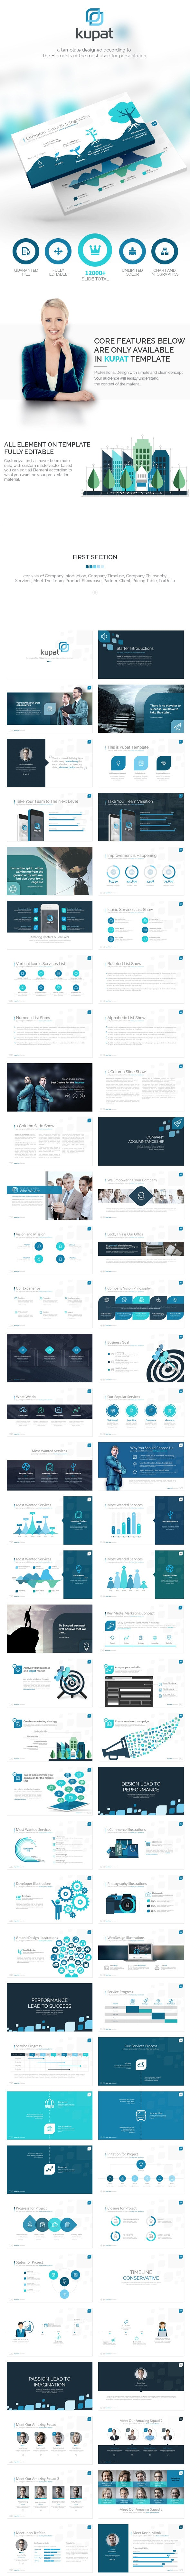 Kupat - Big Deal Powerpoint Template - Business PowerPoint Templates